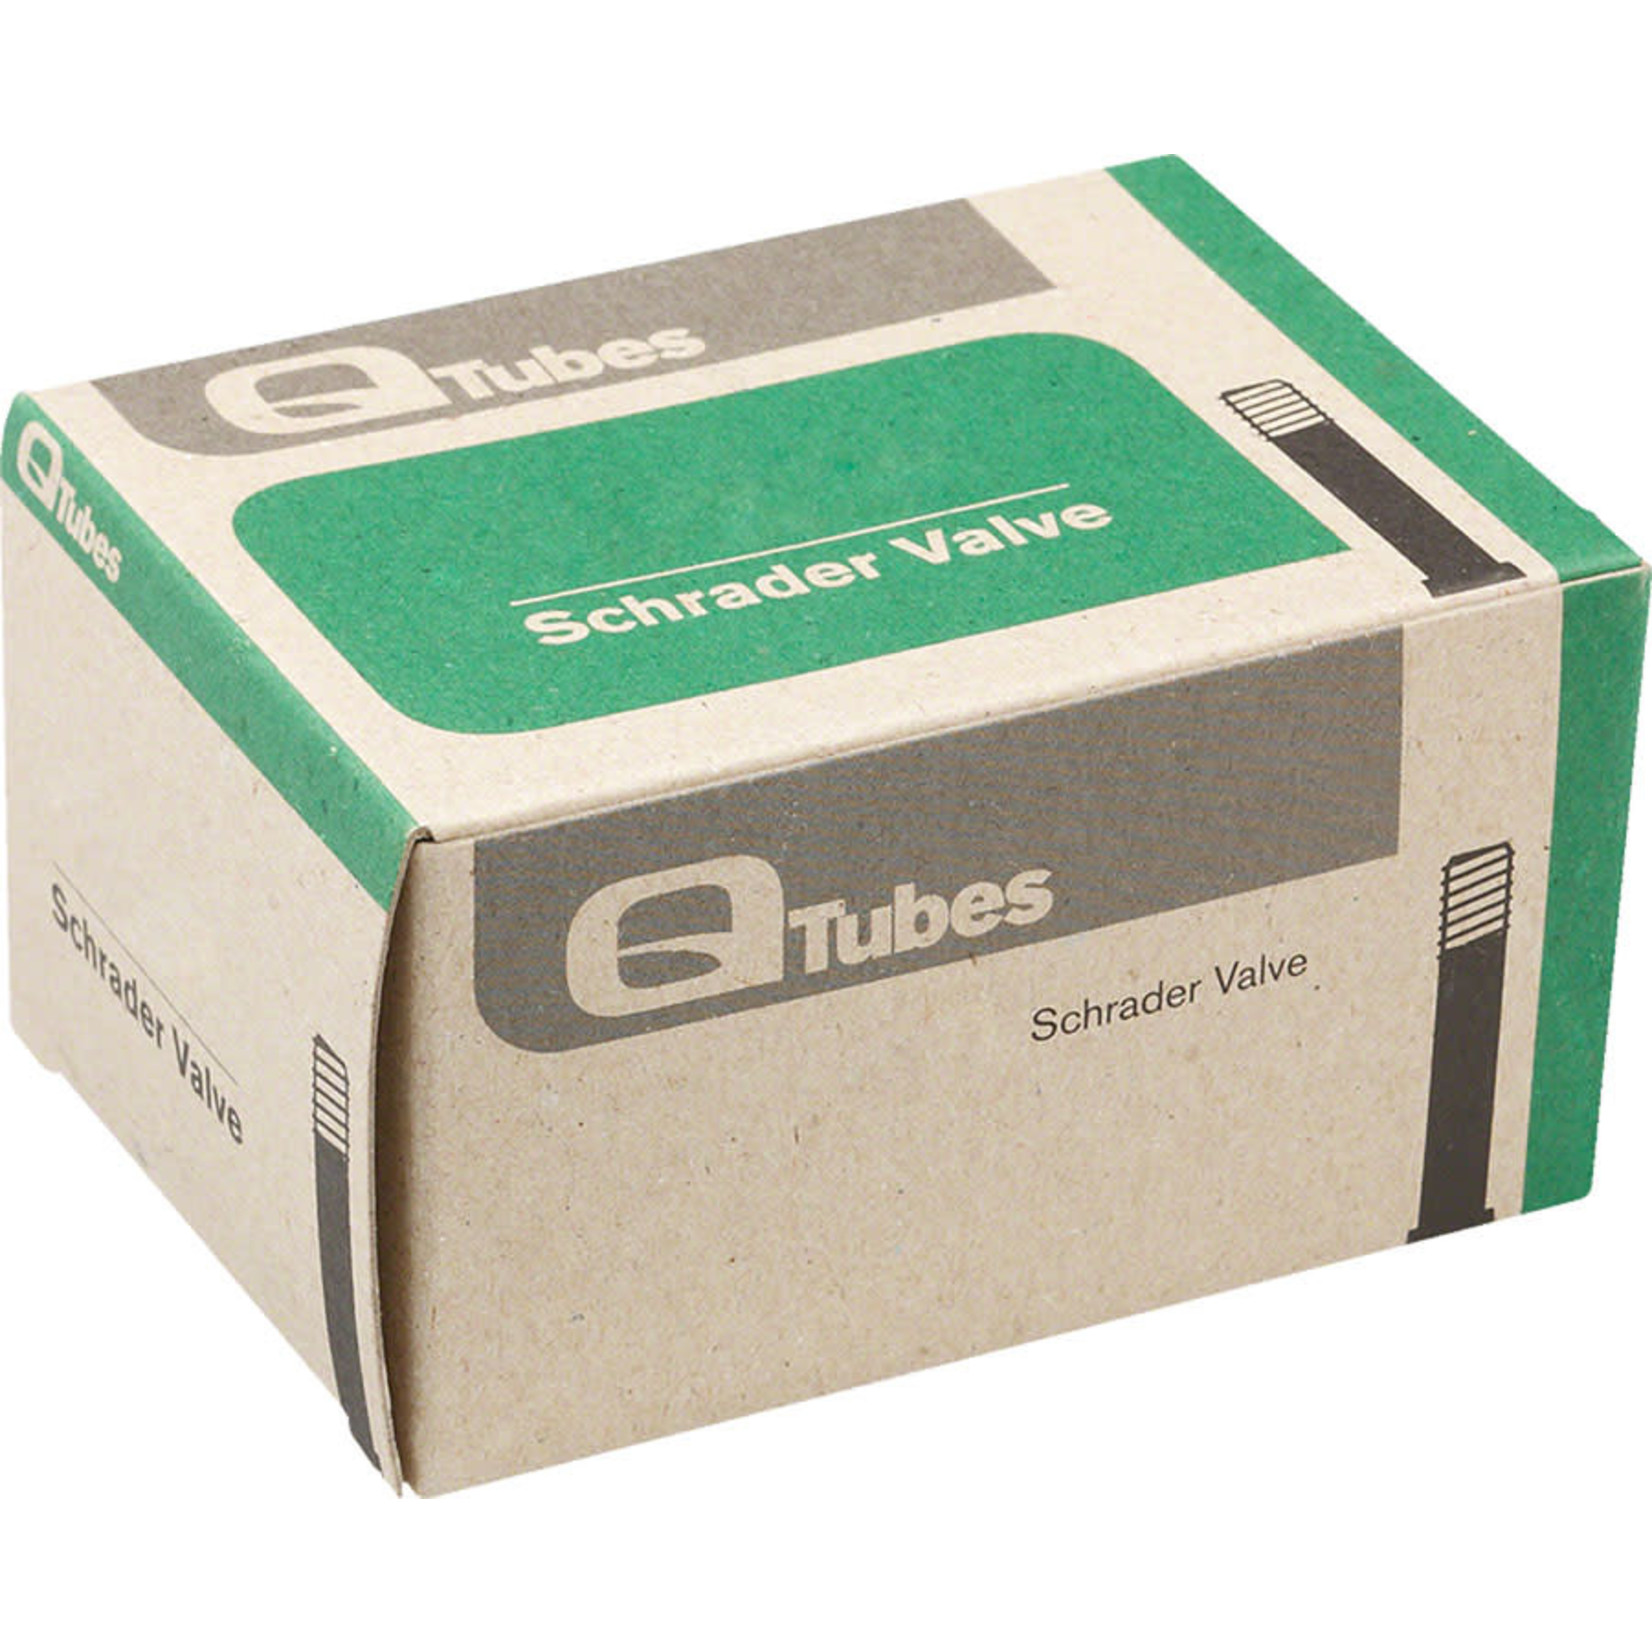 """Q-Tubes Q-Tubes Value Series Tube with Low Lead Schrader Valve: 20"""" x 1.75-2.125"""""""